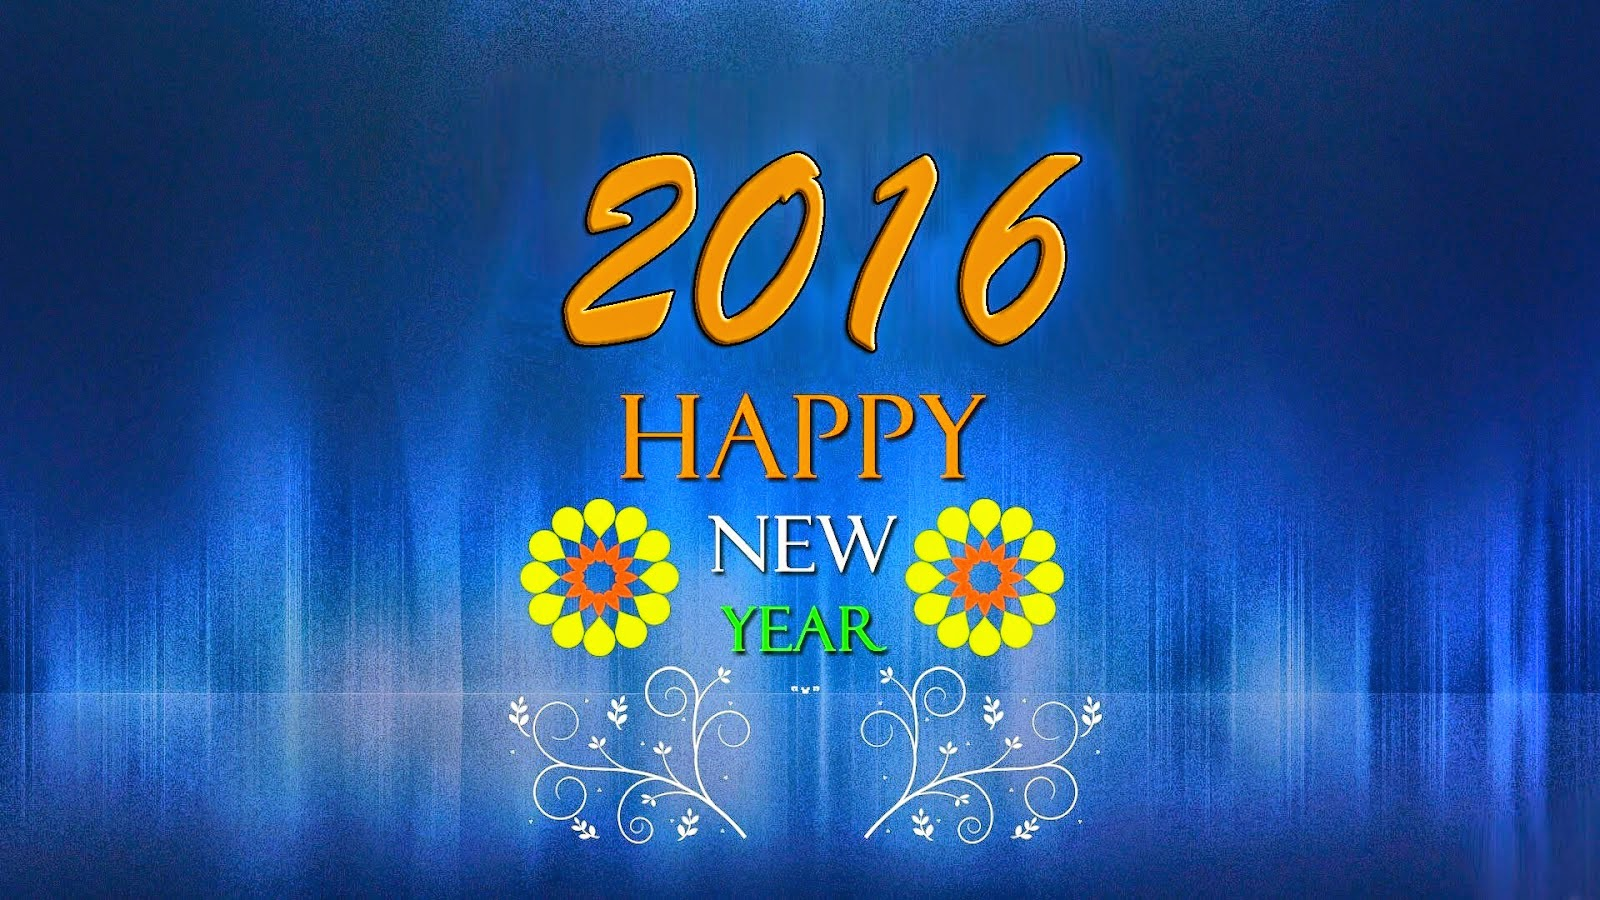 Wallpaper download new year 2016 - Happy New Year 2016 Download 3d Wallpapers Free Happy New Year 2016